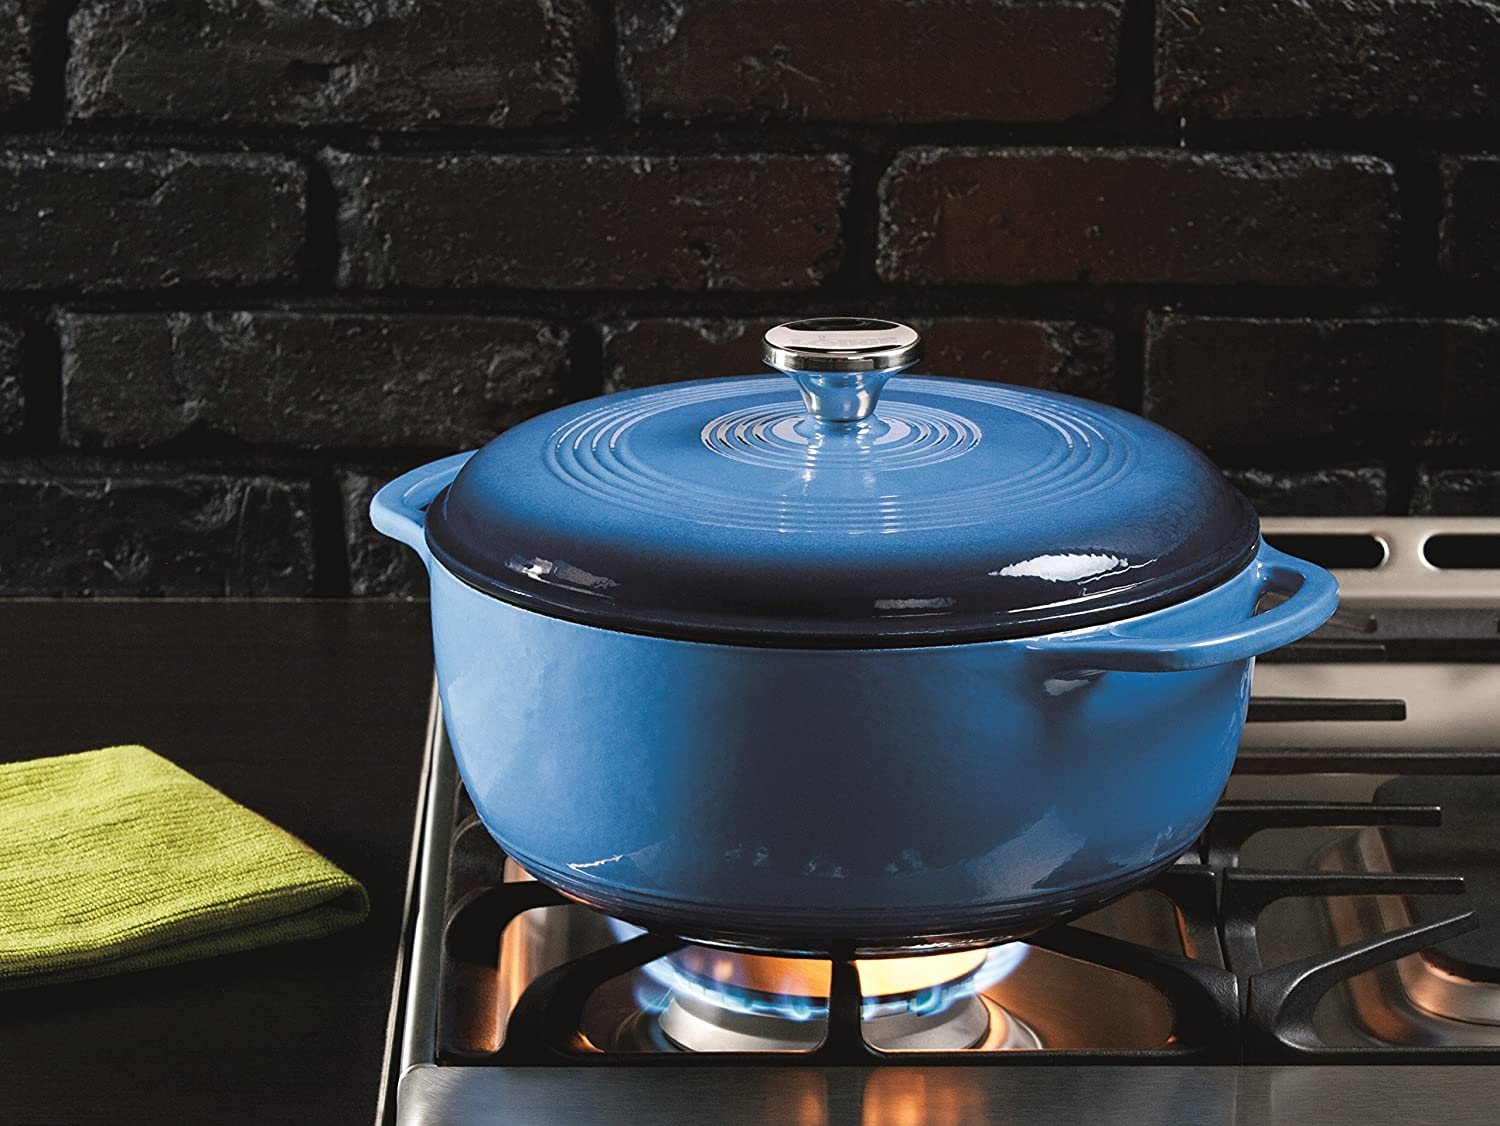 Amazon.com: Lodge EC6D33 Enameled Cast Iron Dutch Oven, 6-Quart ...